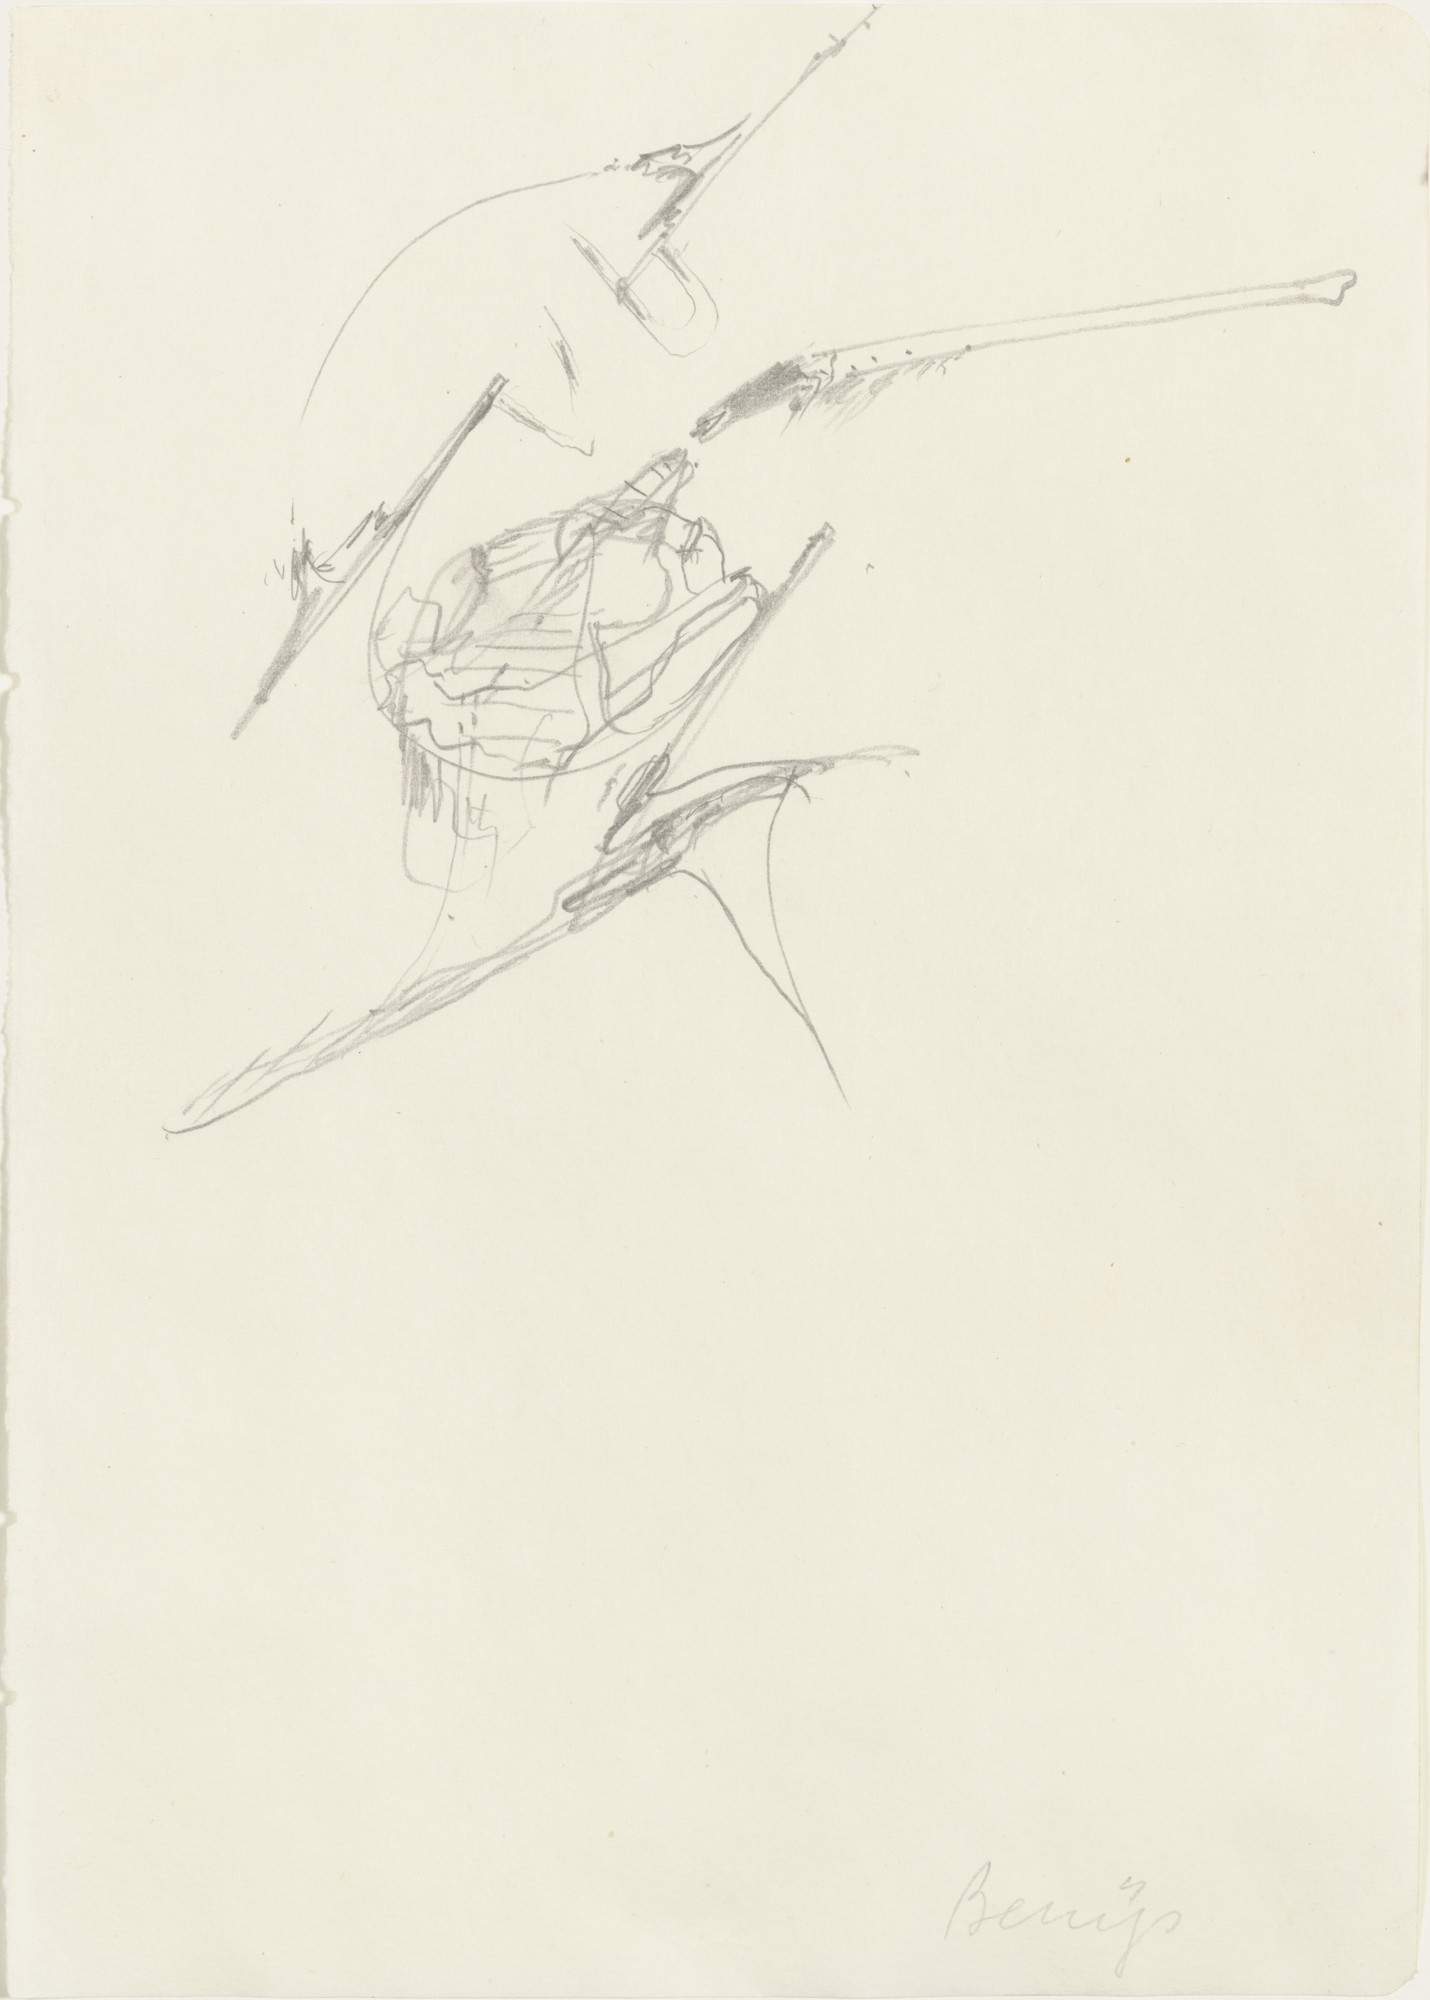 Joseph Beuys. Untitled. n.d.